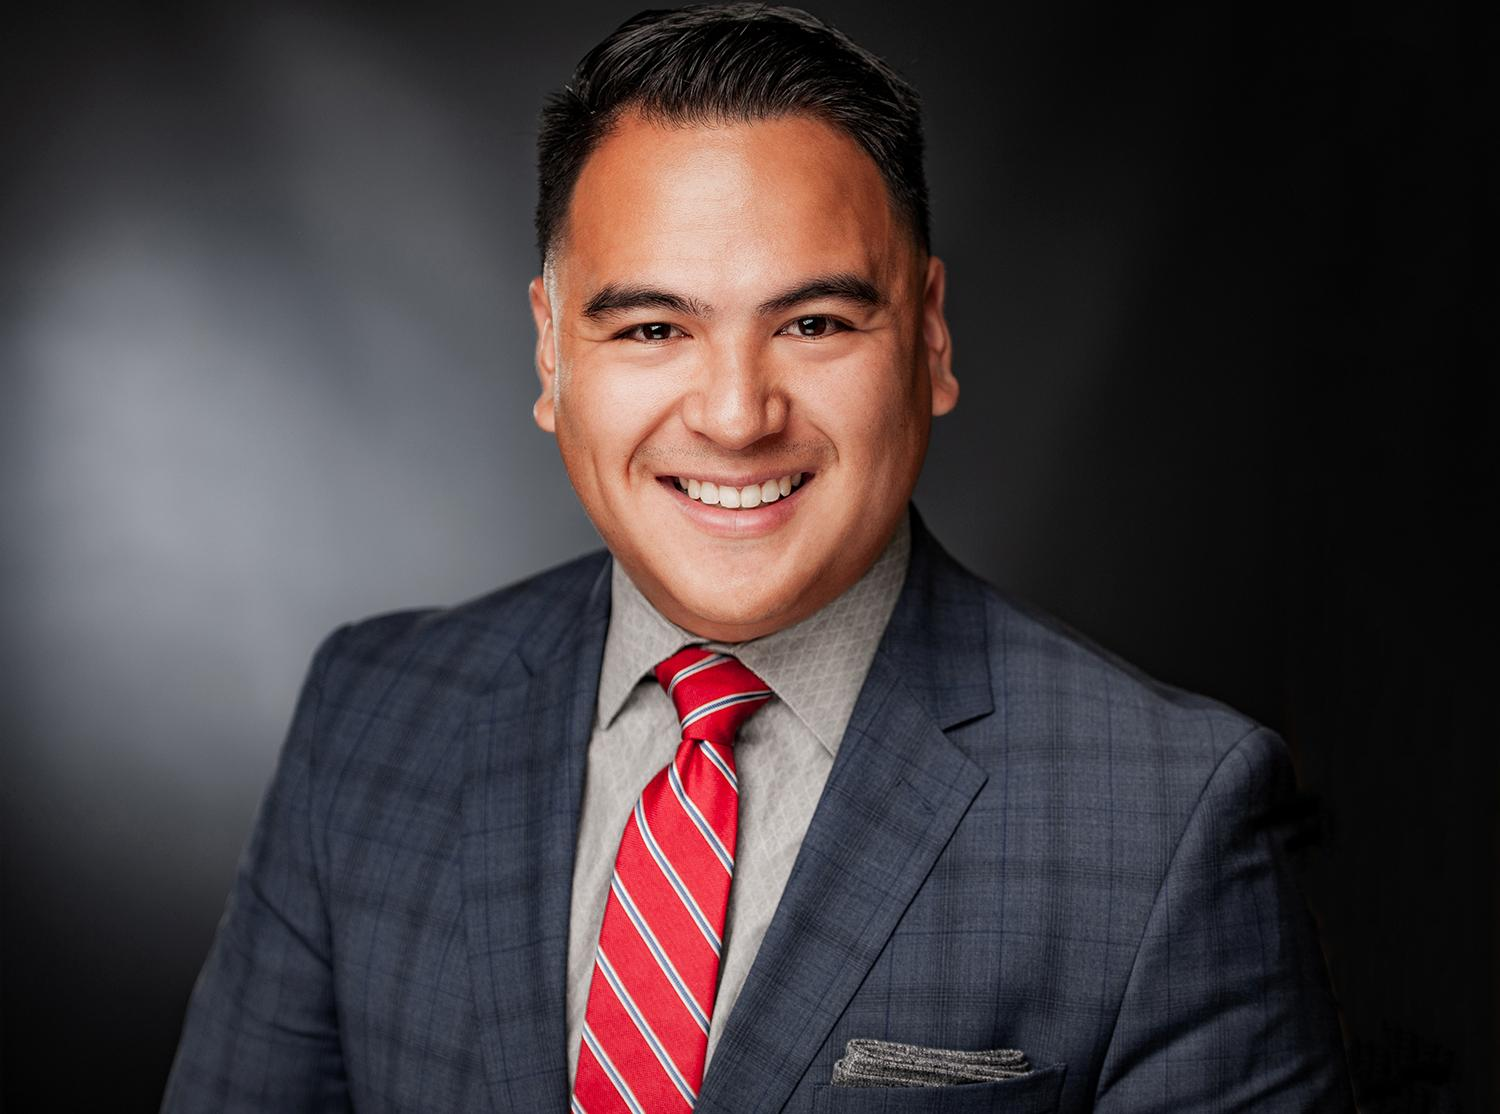 KYLE CUARESMA Financial Professional & Insurance Agent